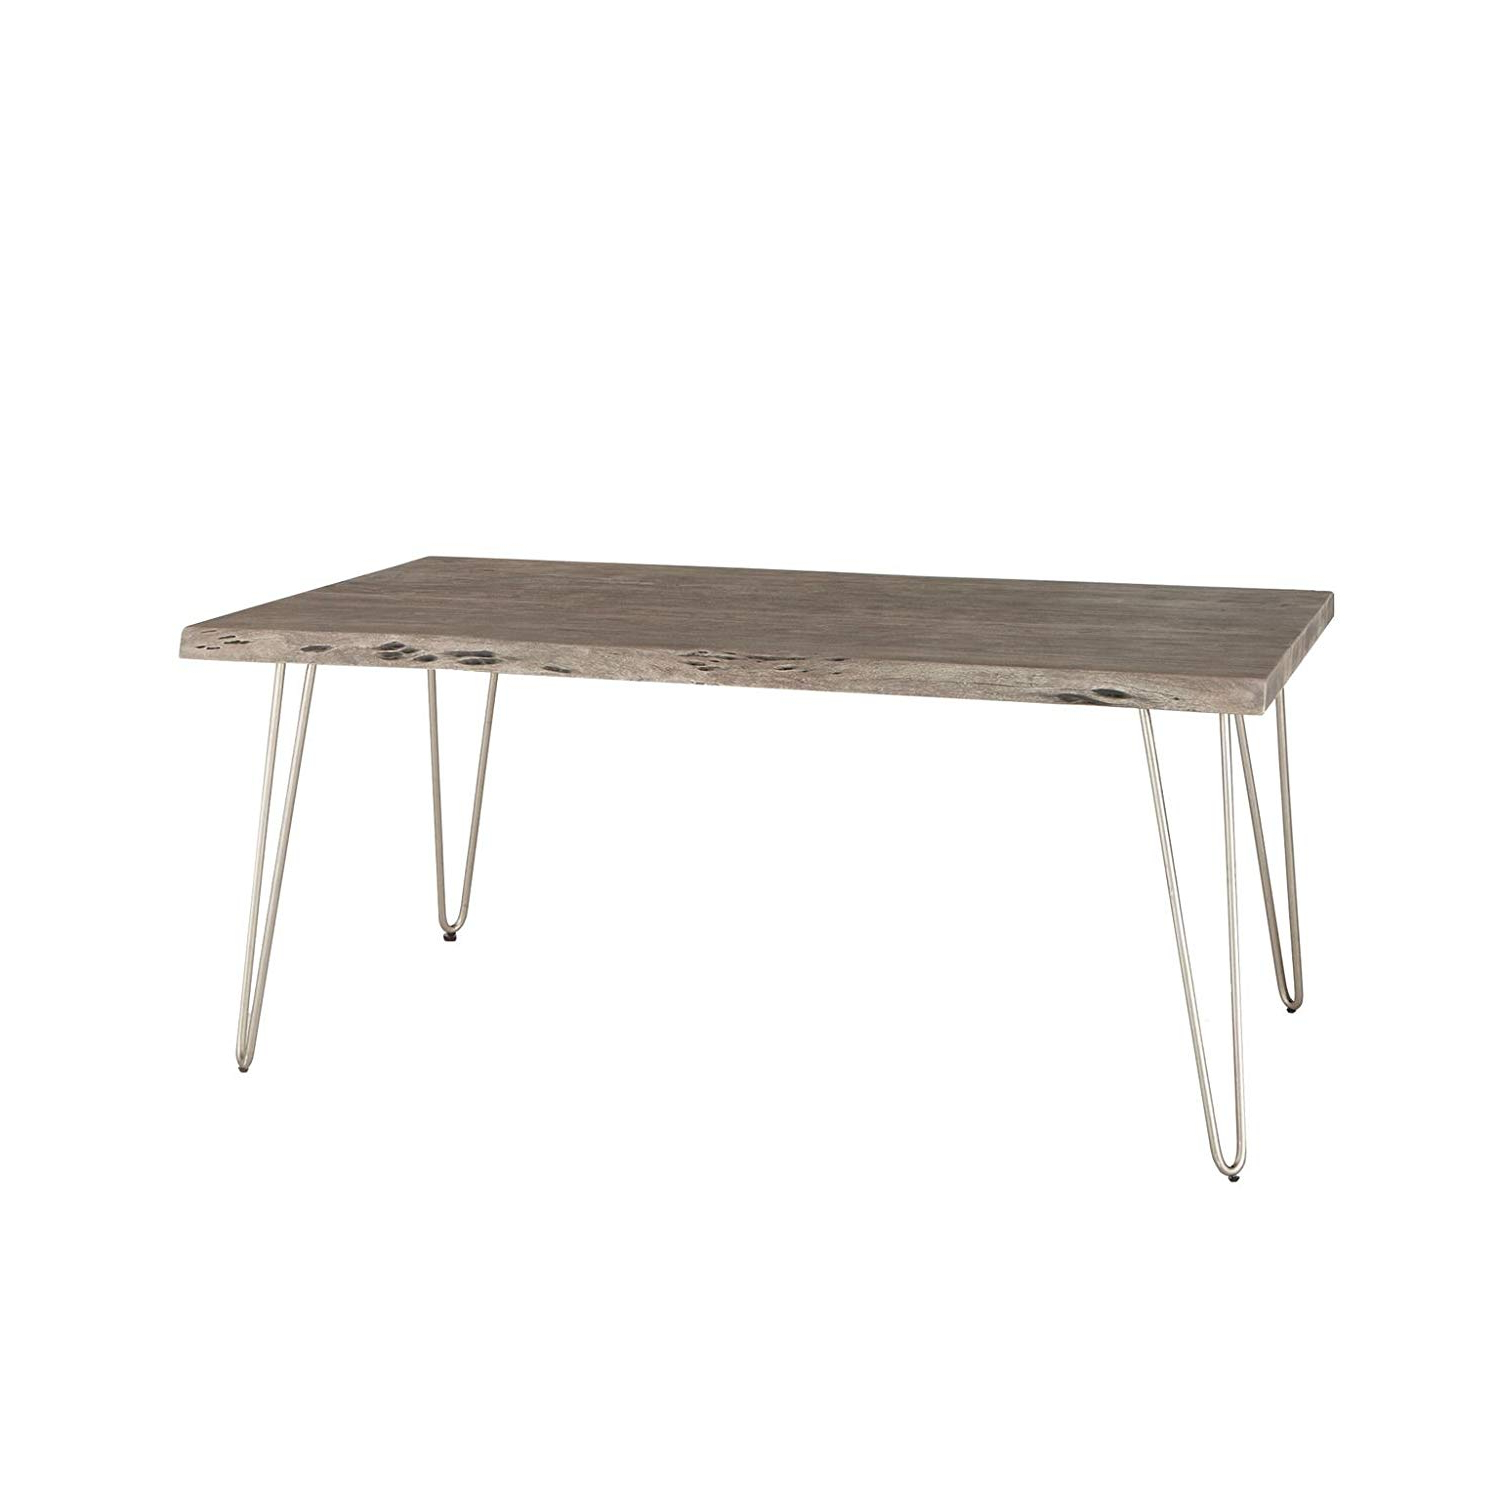 Amazon – World Interiors Zwgan6838wg Weathered Grey Within Newest Acacia Top Dining Tables With Metal Legs (View 18 of 30)